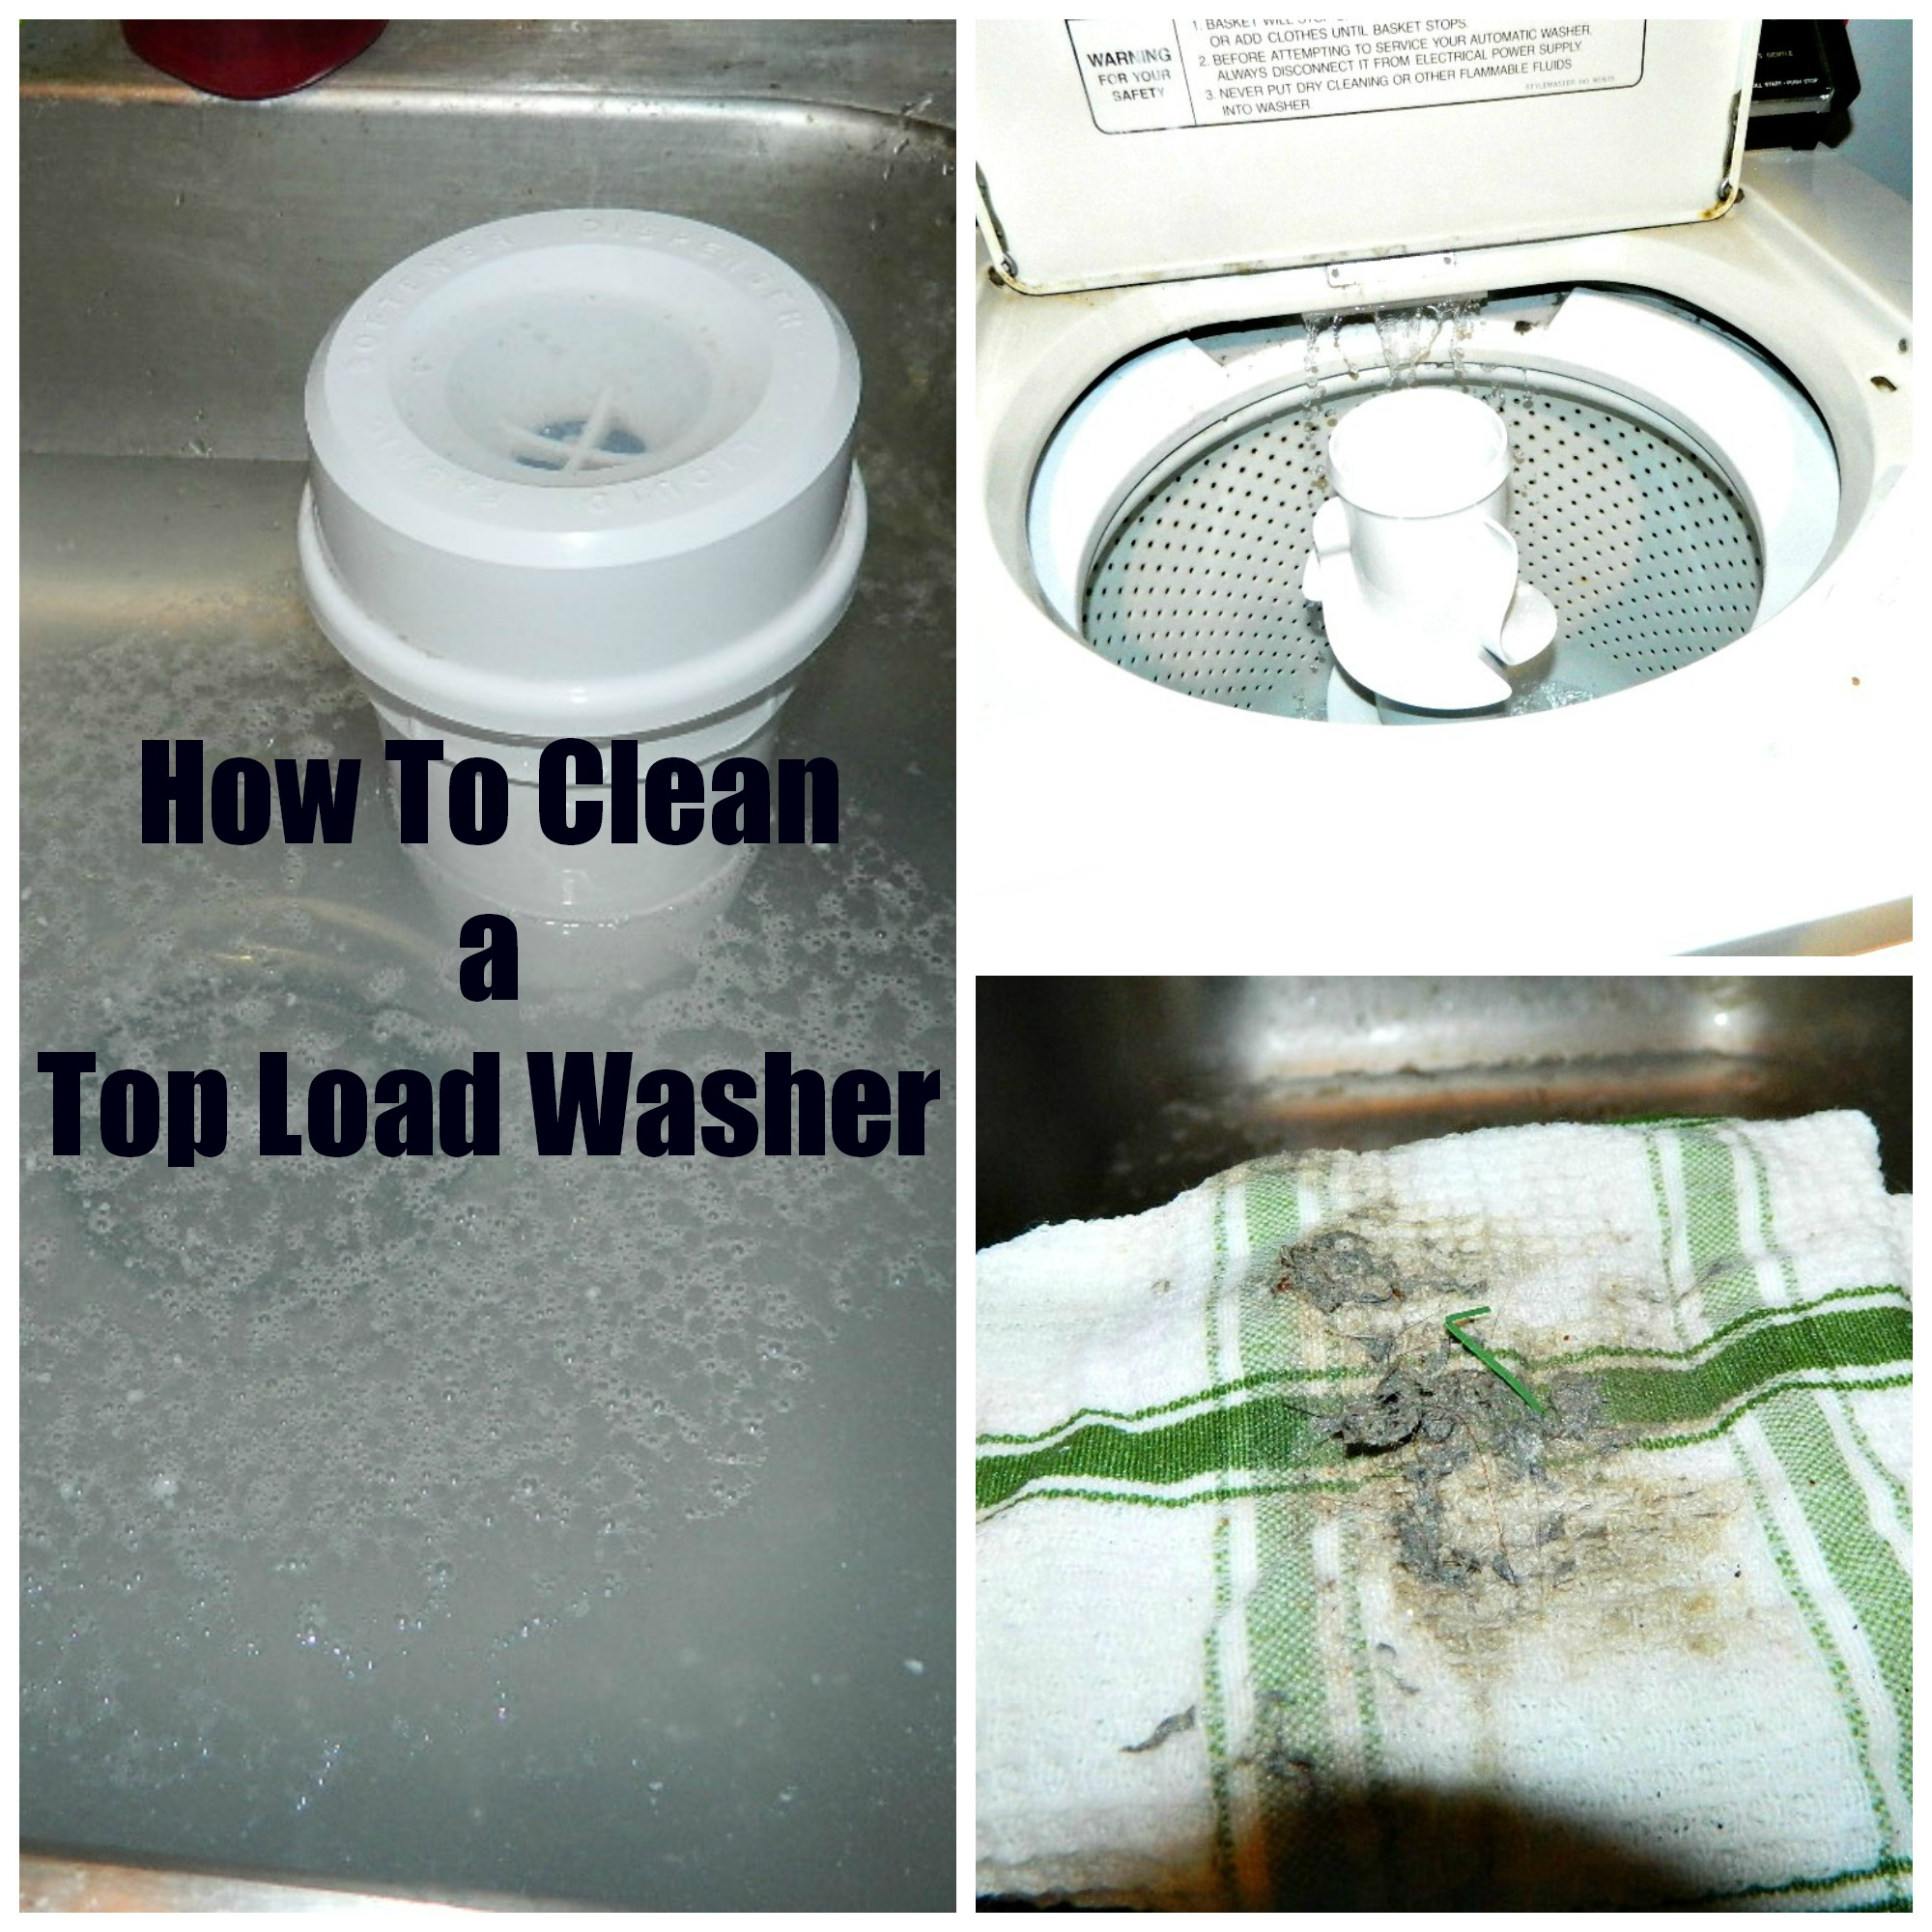 How to Clean a Top-Load Washer